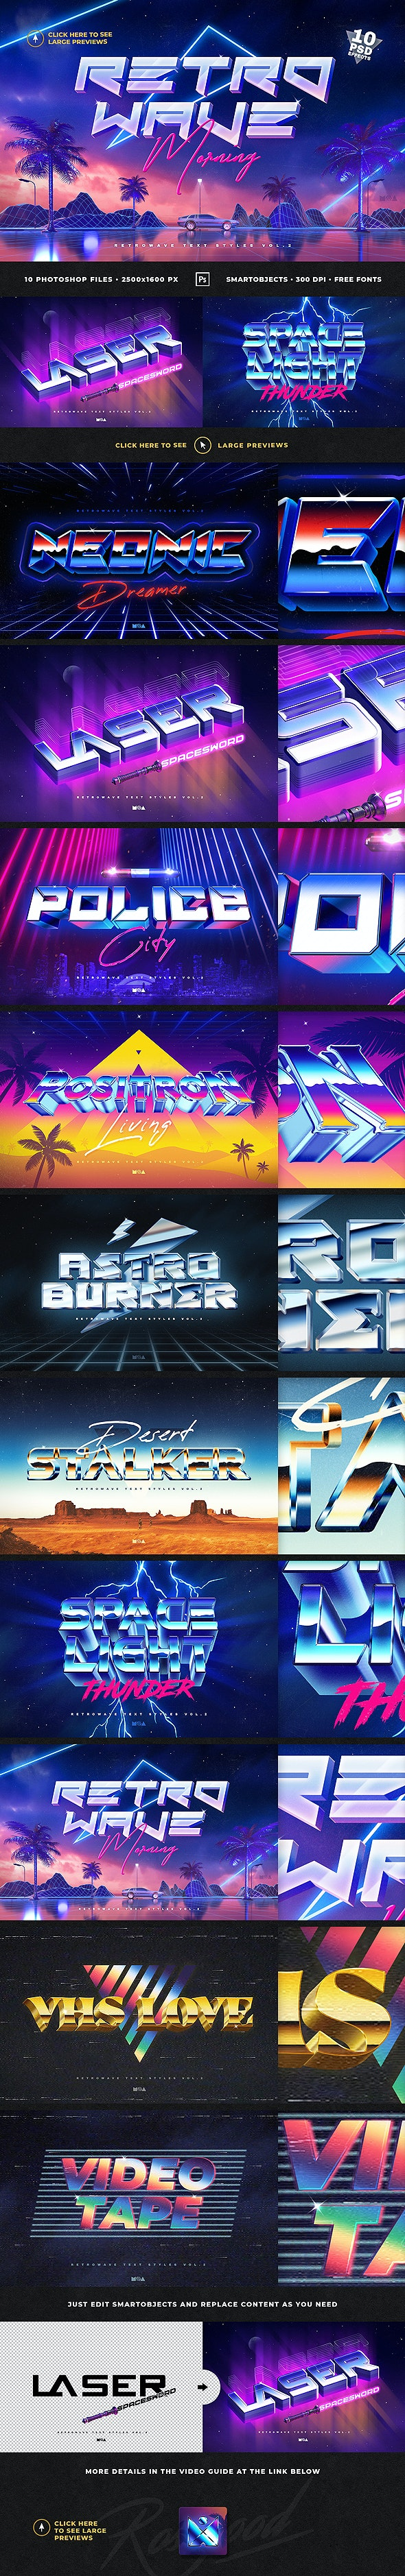 80s Retro Text Effects vol.2 - Text Effects Actions